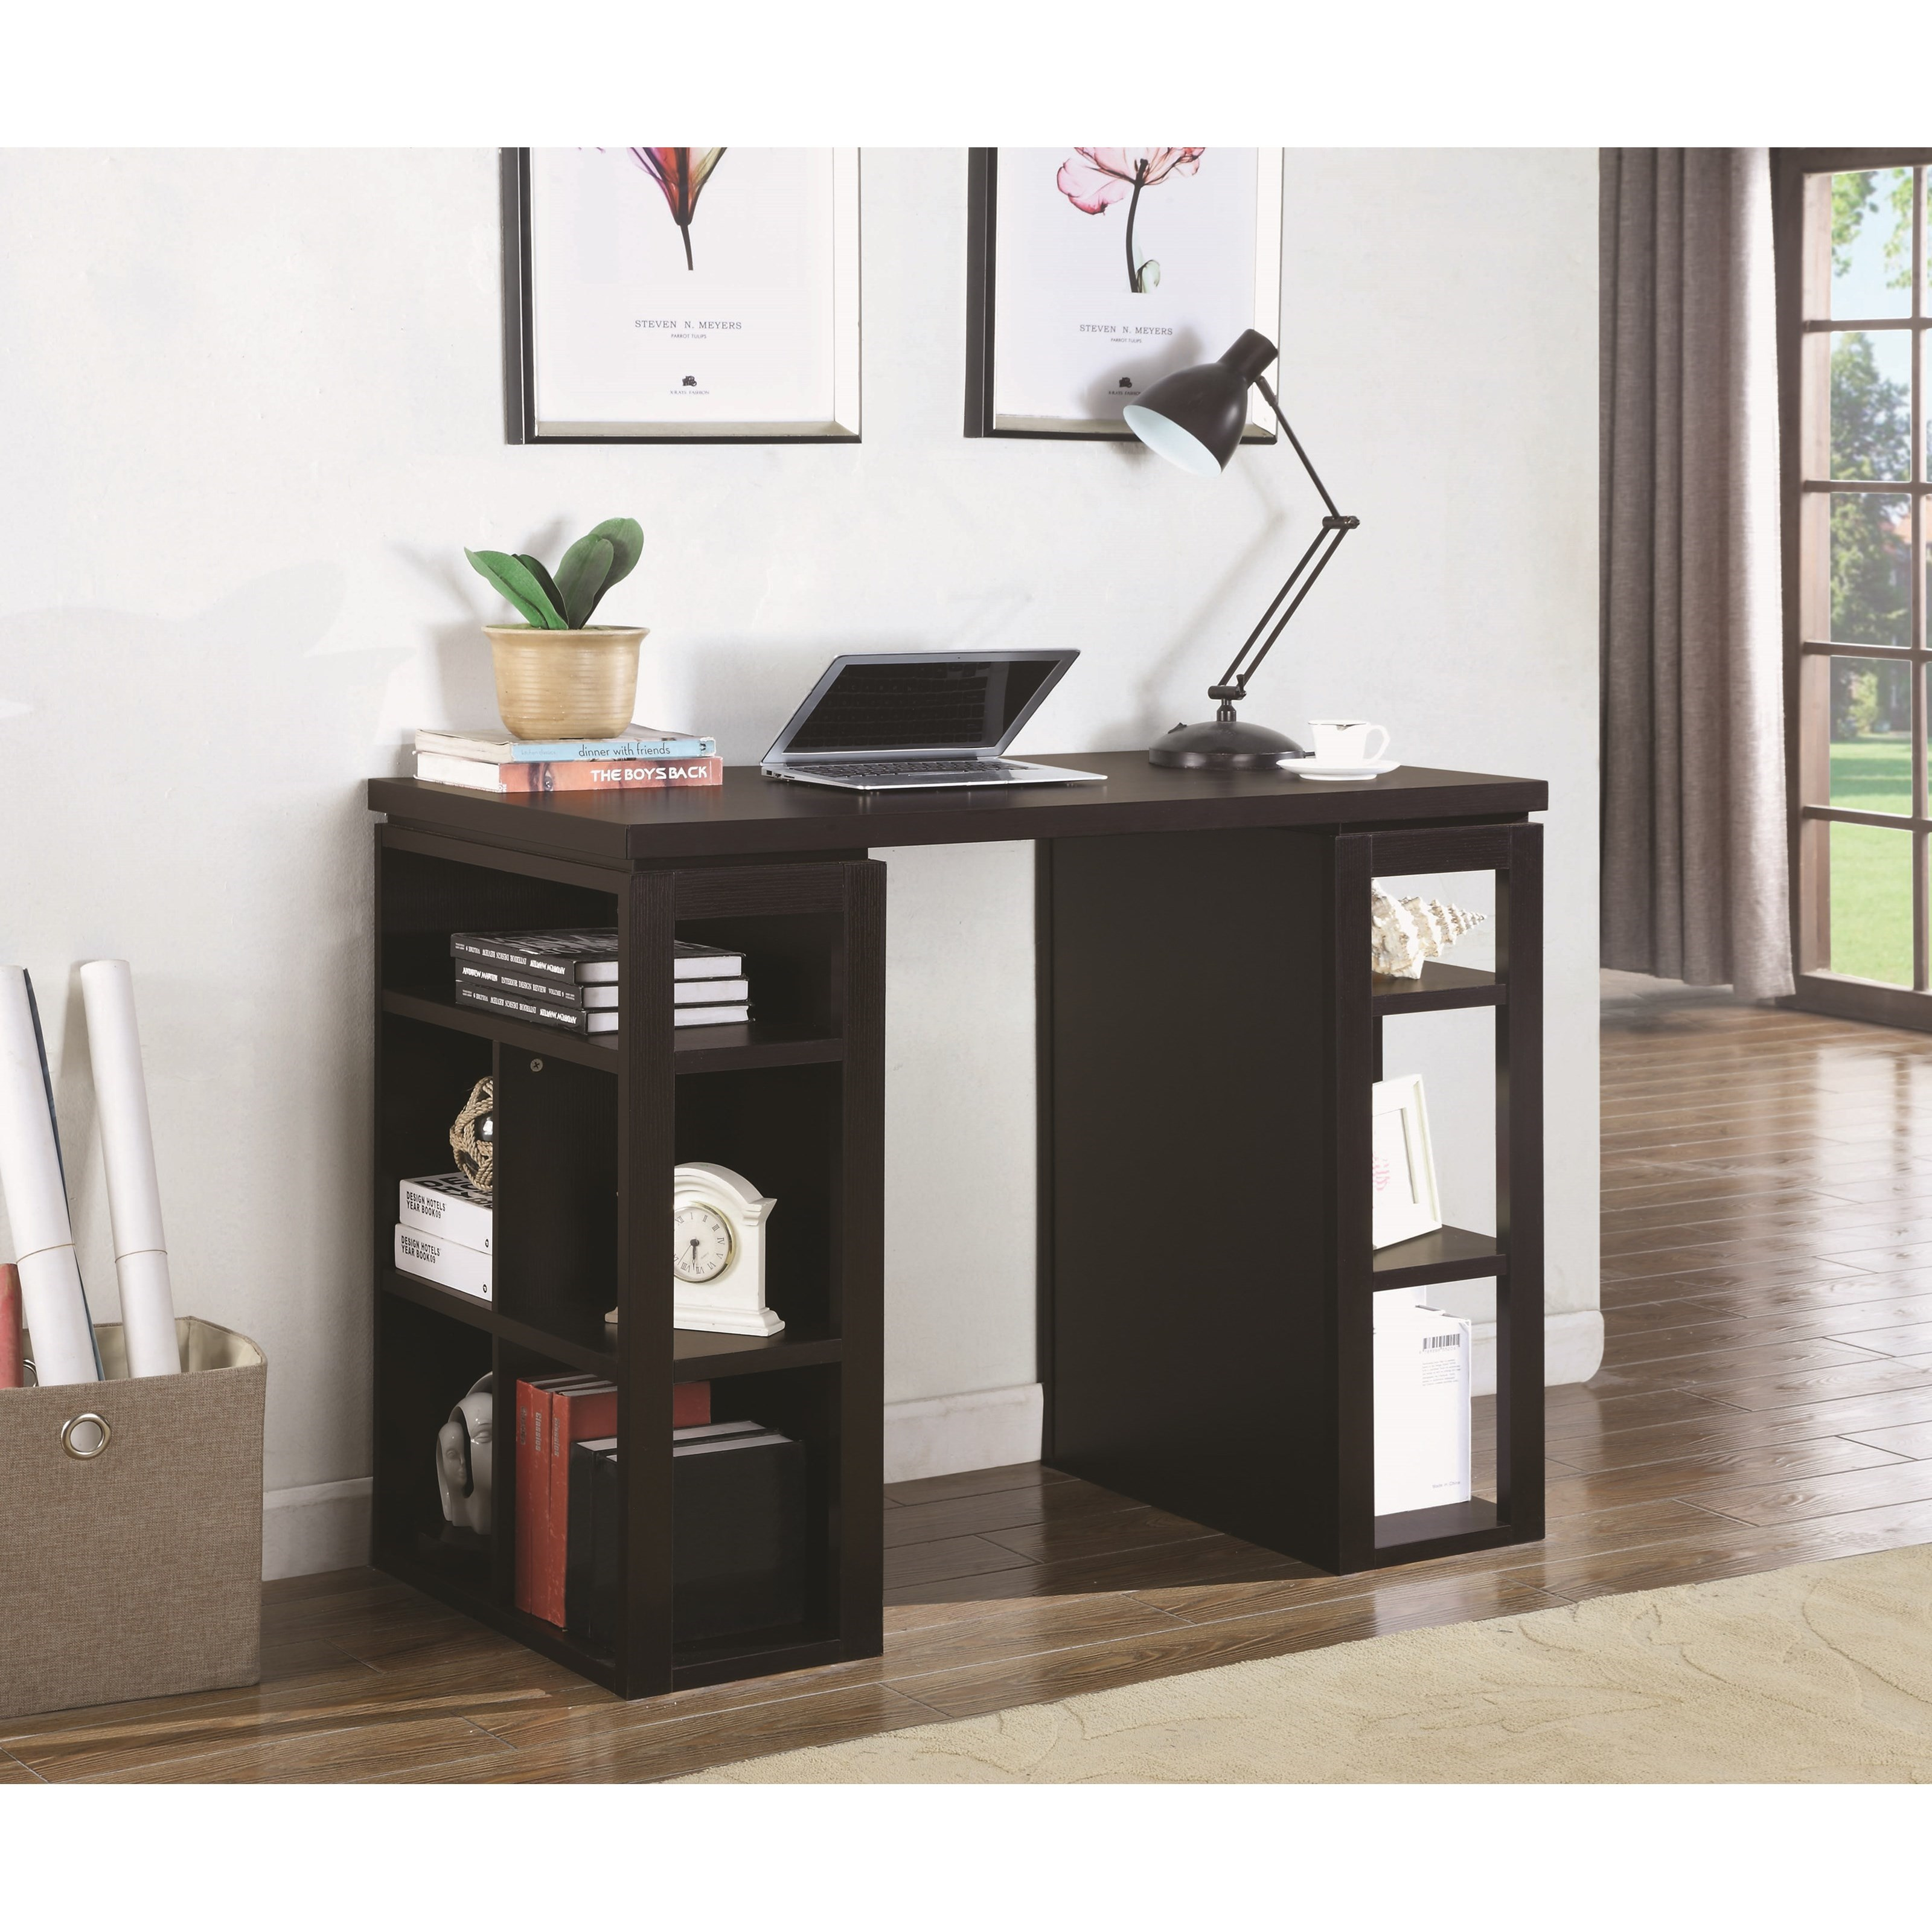 Counter Height Work Station : Coaster Desks Counter Height Writing Desk - Furniture Superstore - NM ...